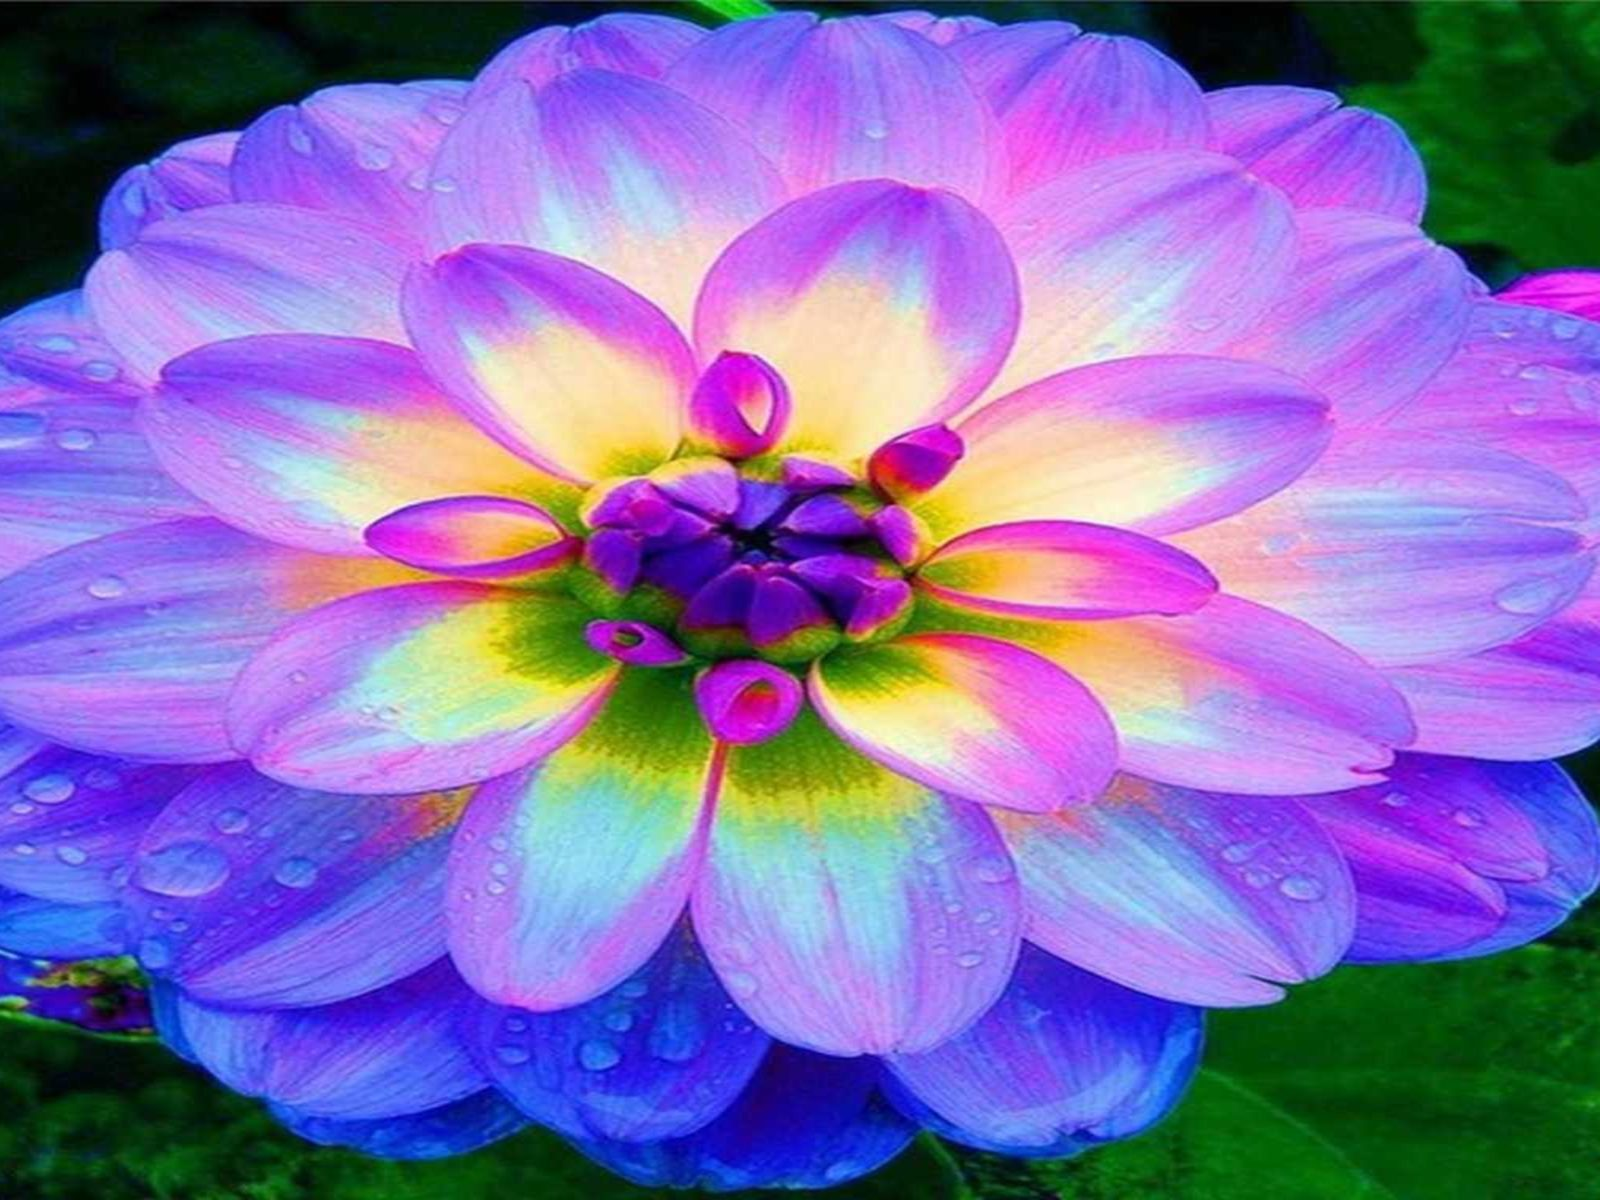 Beautiful Cars Hd Wallpapers Download Blue Dahlia Flowers Hd Wallpapers Wallpapers13 Com